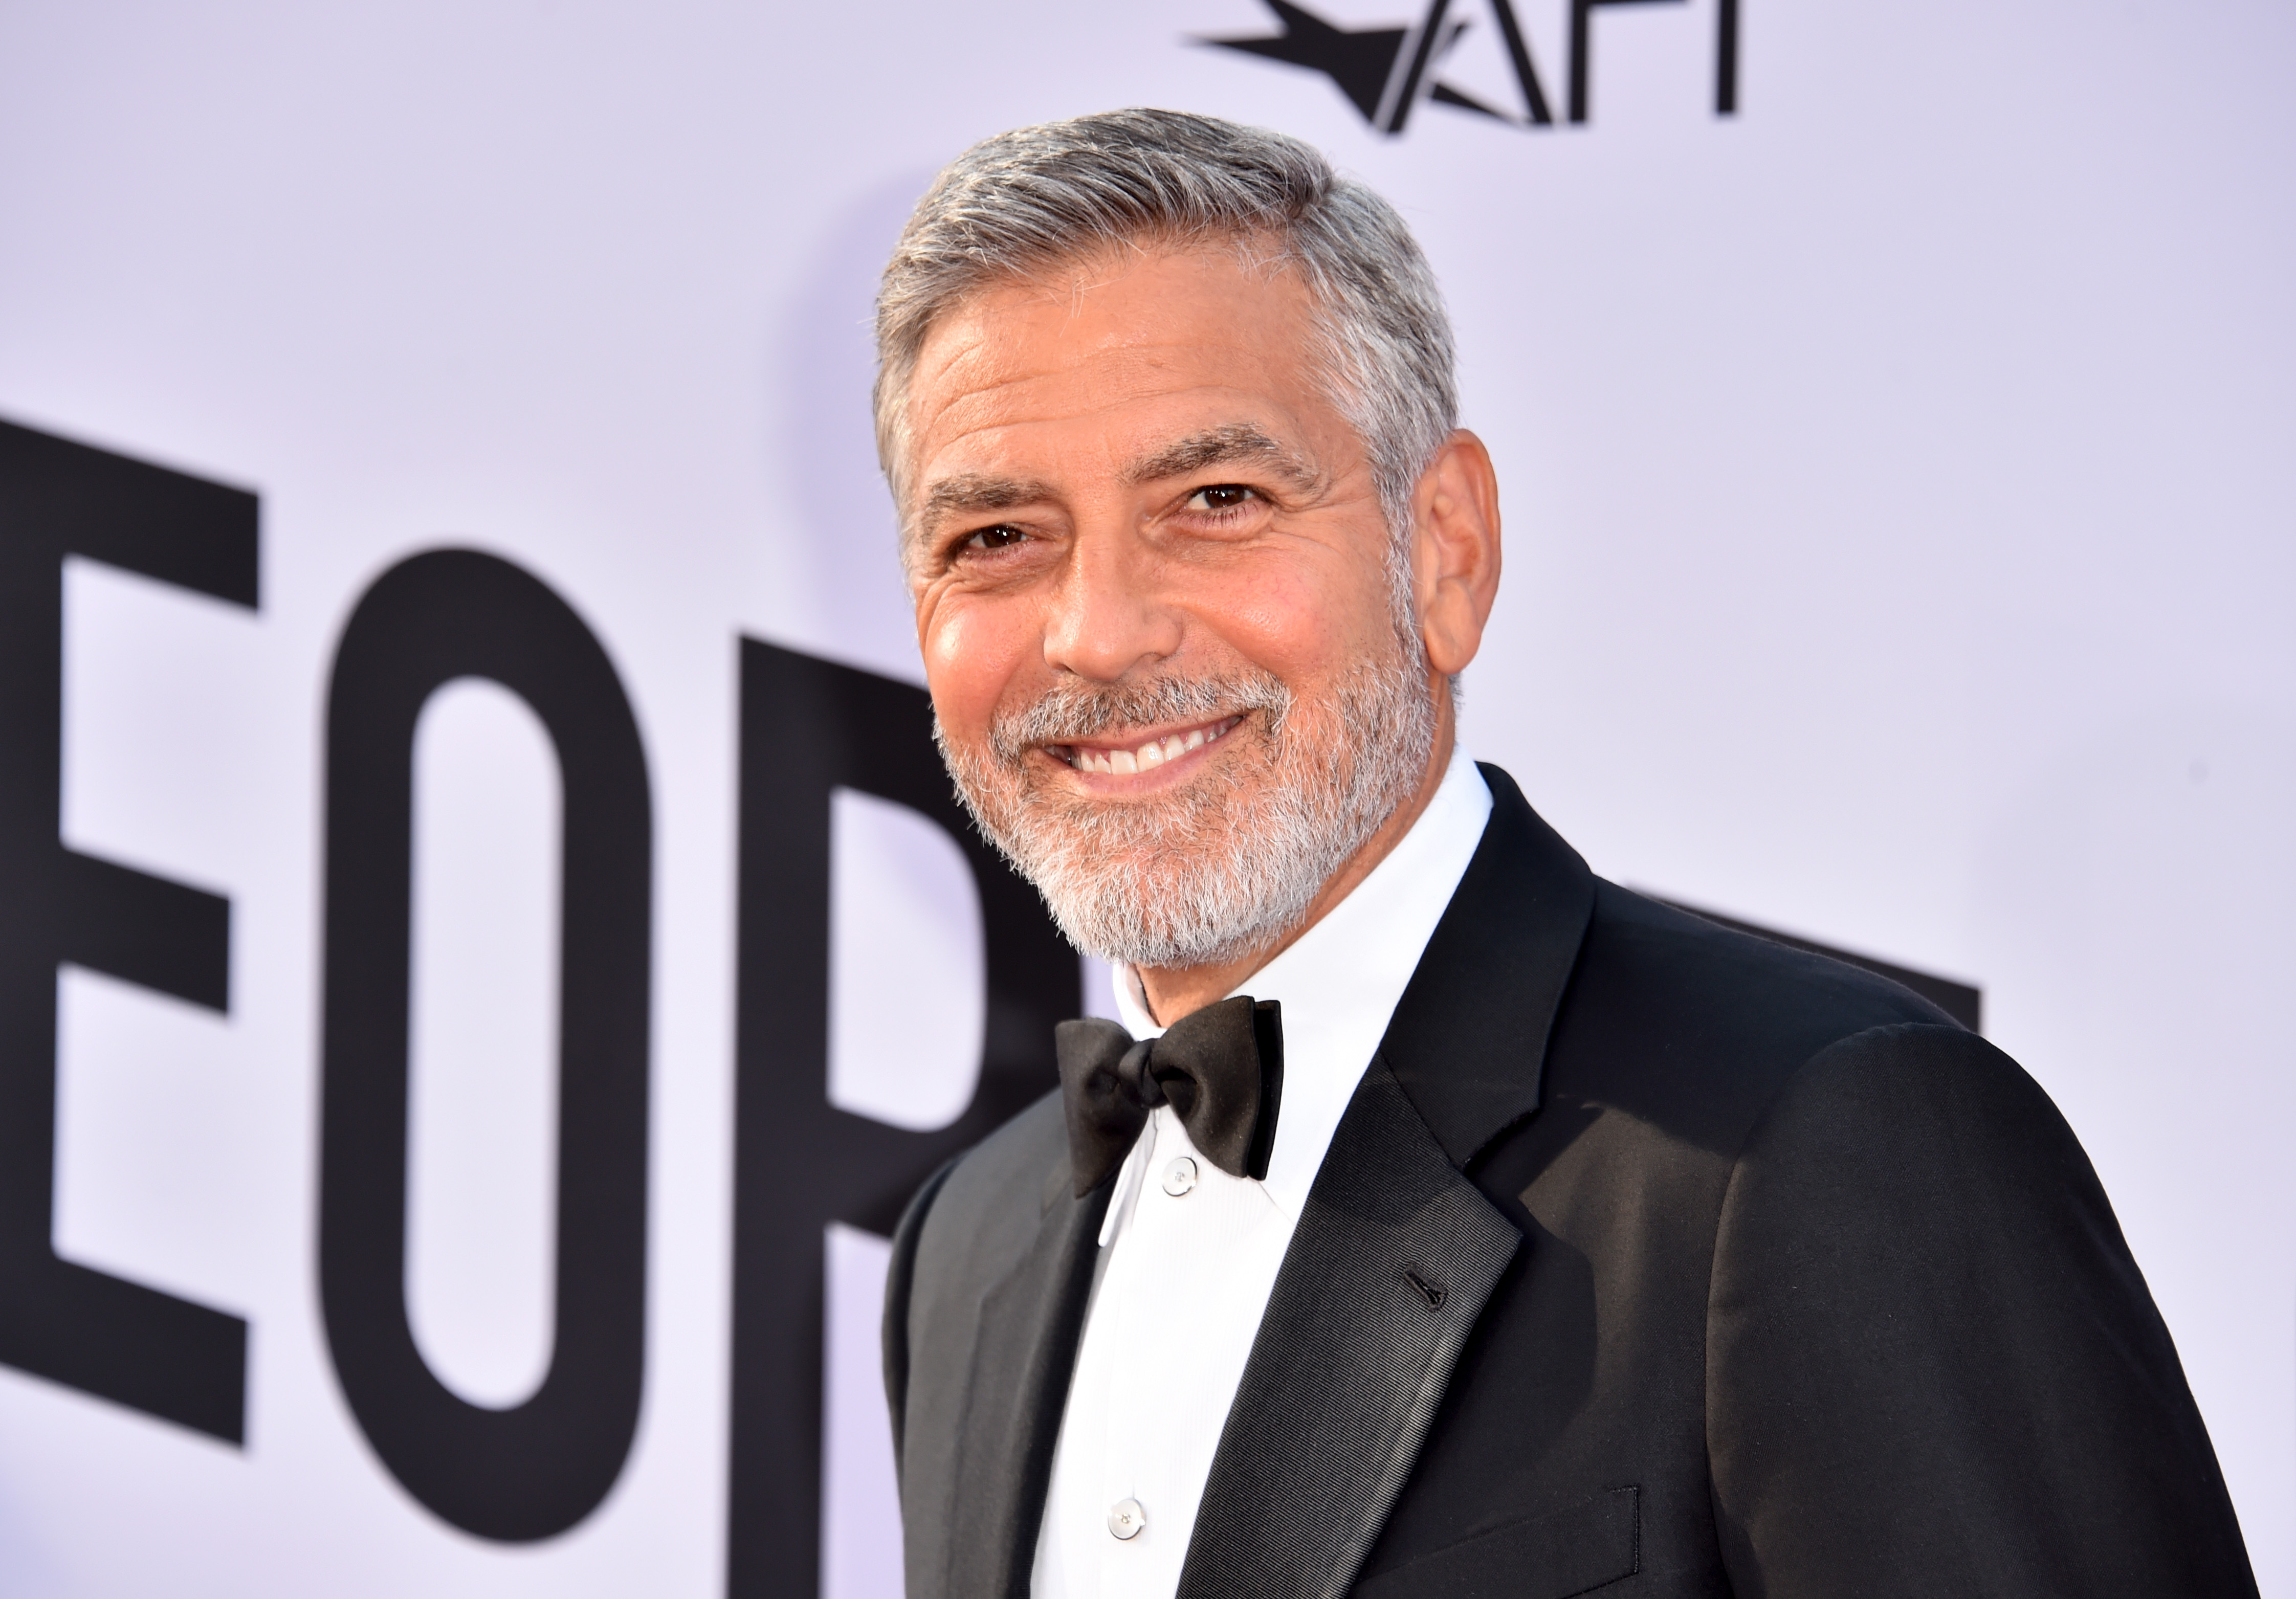 George Clooney (Source: Getty Images)